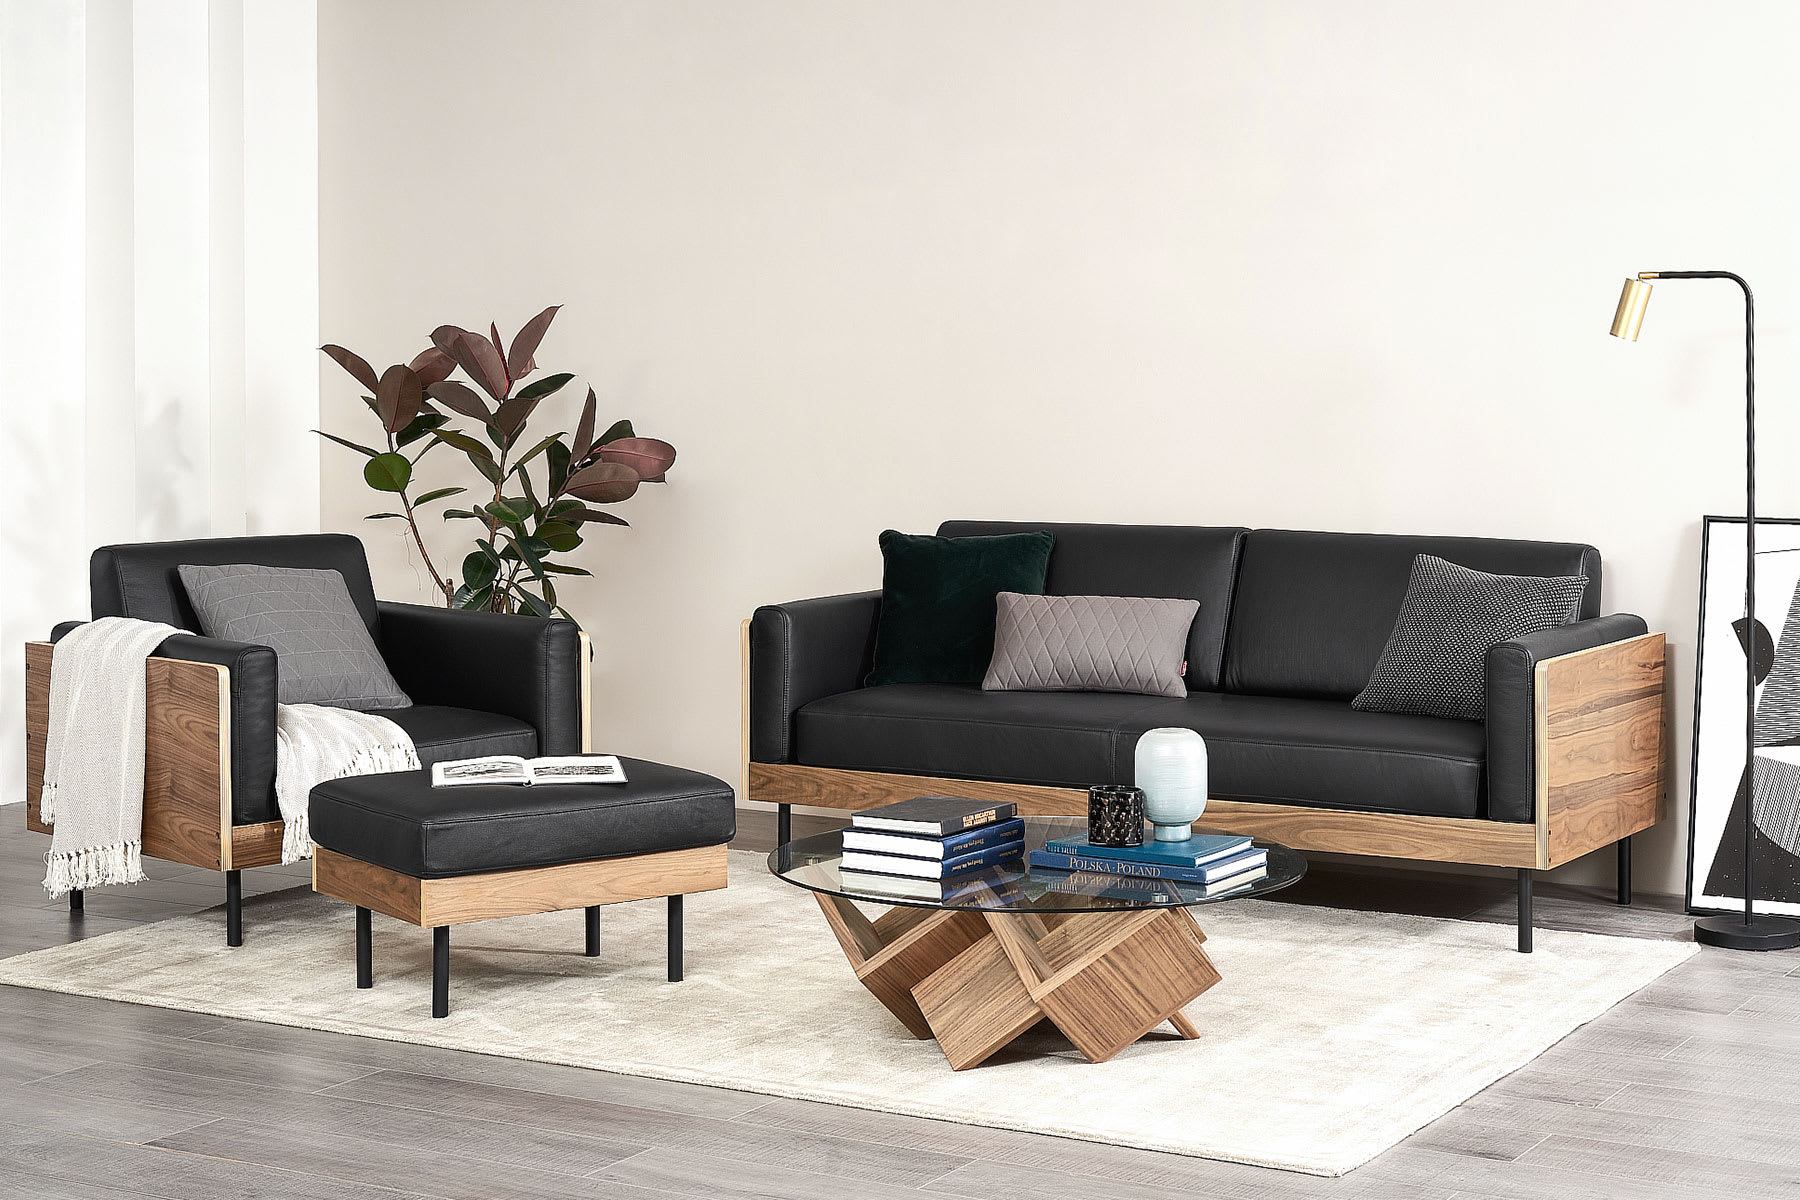 black leather sofa and armchair in living room